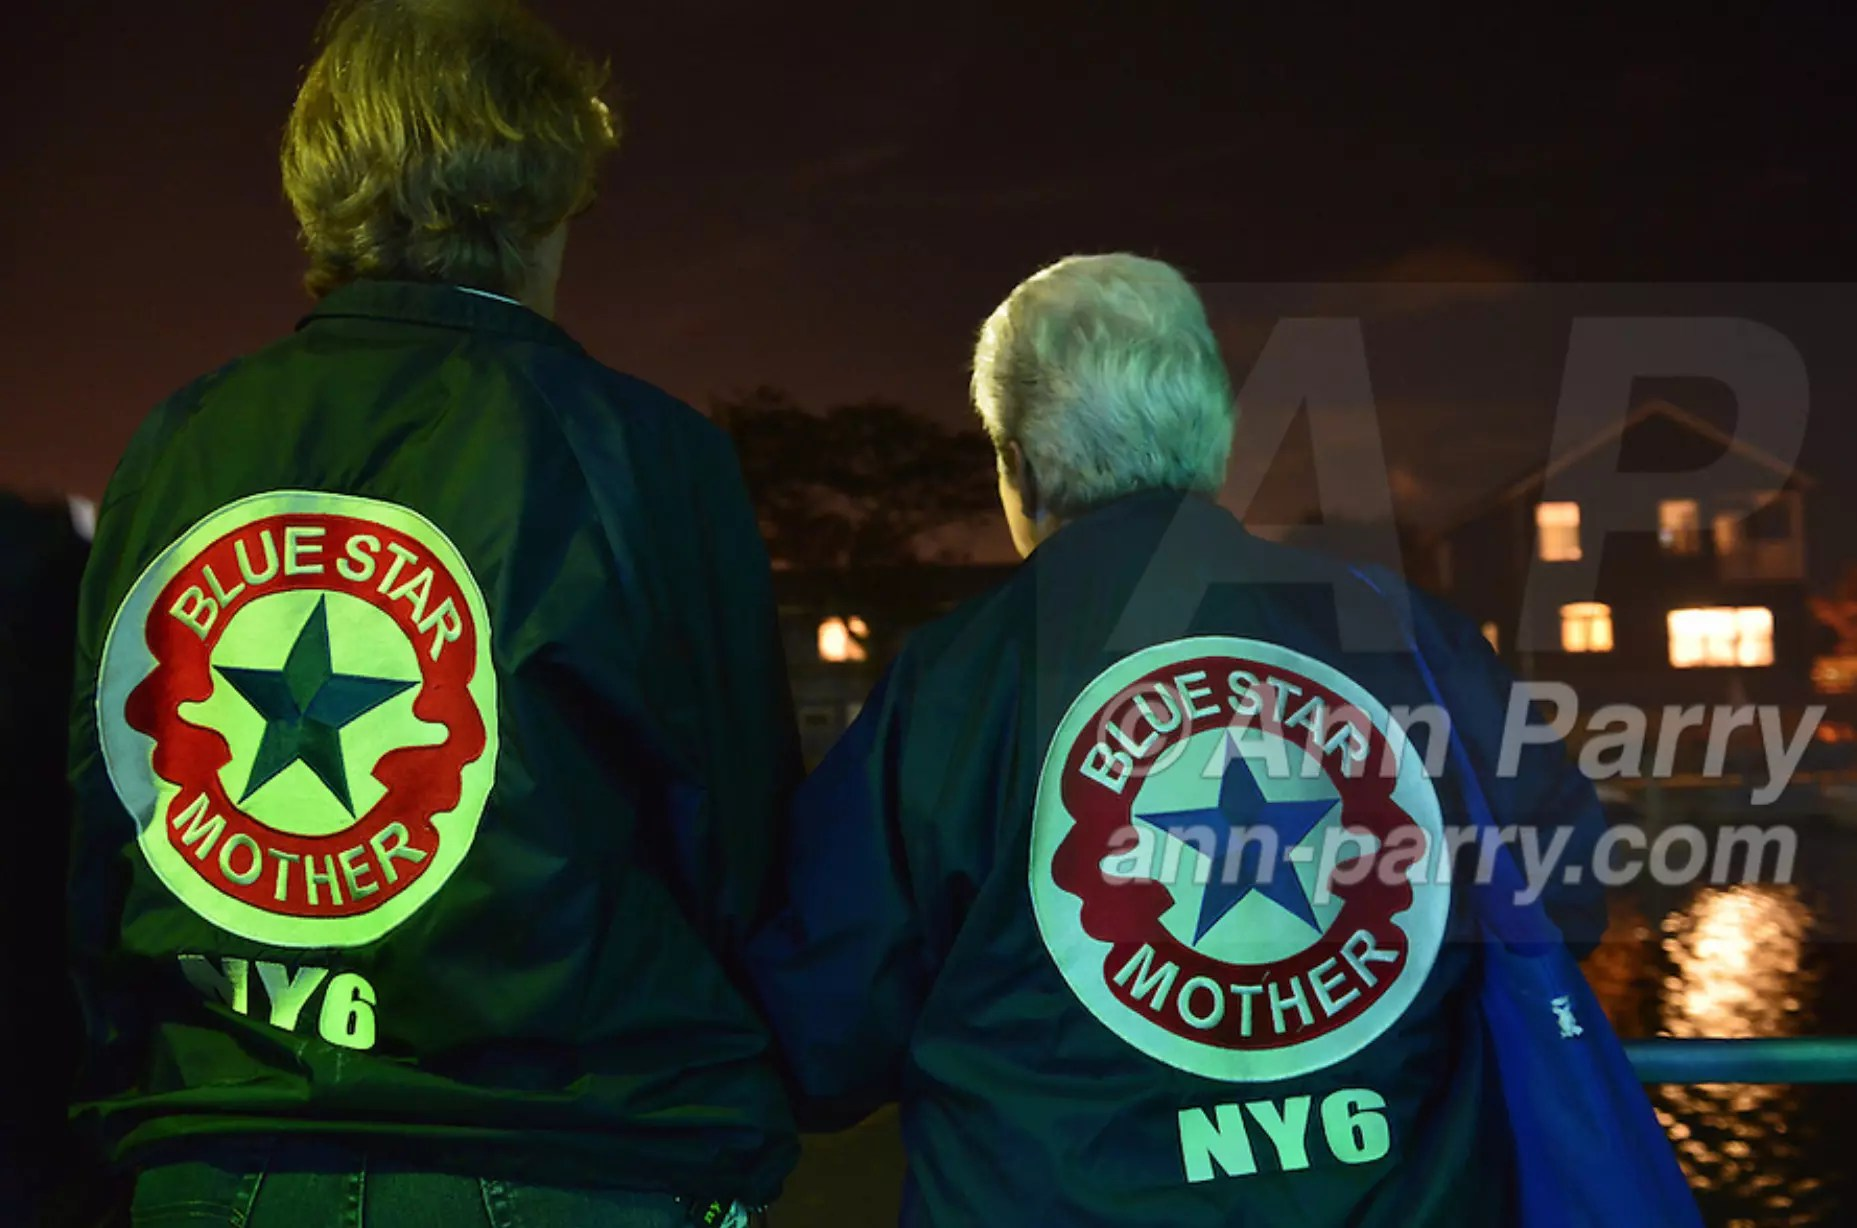 Freeport, NY, USA. Sept. 10, 2014. Two Blue Star Mothers of America members look at the shimmering night lights from houses along the canal while sailing on board the boat Miss Freeport V, which set sail from the Woodcleft Canal of the Freeport Nautical Mile after a dockside remembrance ceremony in honor of victims of the terrorist attacks of September 11 2001, on the eve of the 13th anniversary of the 9/11 attacks. On the back of each jacket is NY6, for the Long Island Blue Star Moms Chapter. Non-political Blue Star Mothers of America gives support for mothers with sons or daughters who are, or were, actively serving in the war.